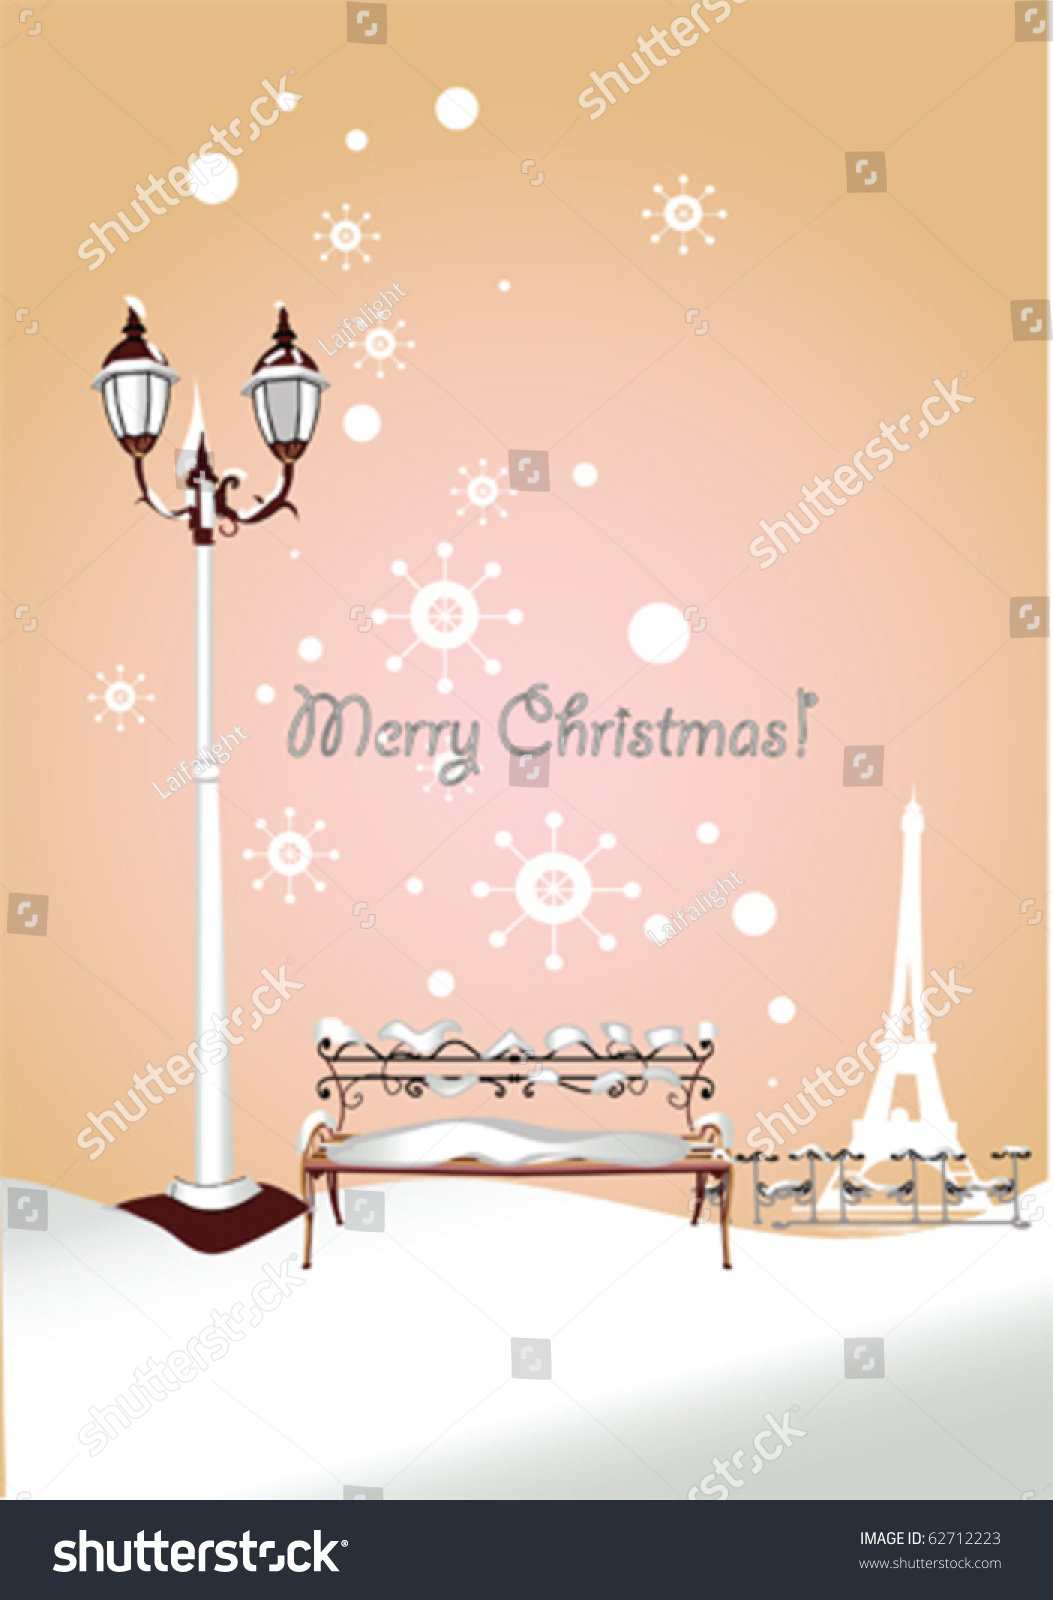 Romantic Christmas Card Winter Bench Park Stock Vector Royalty Free